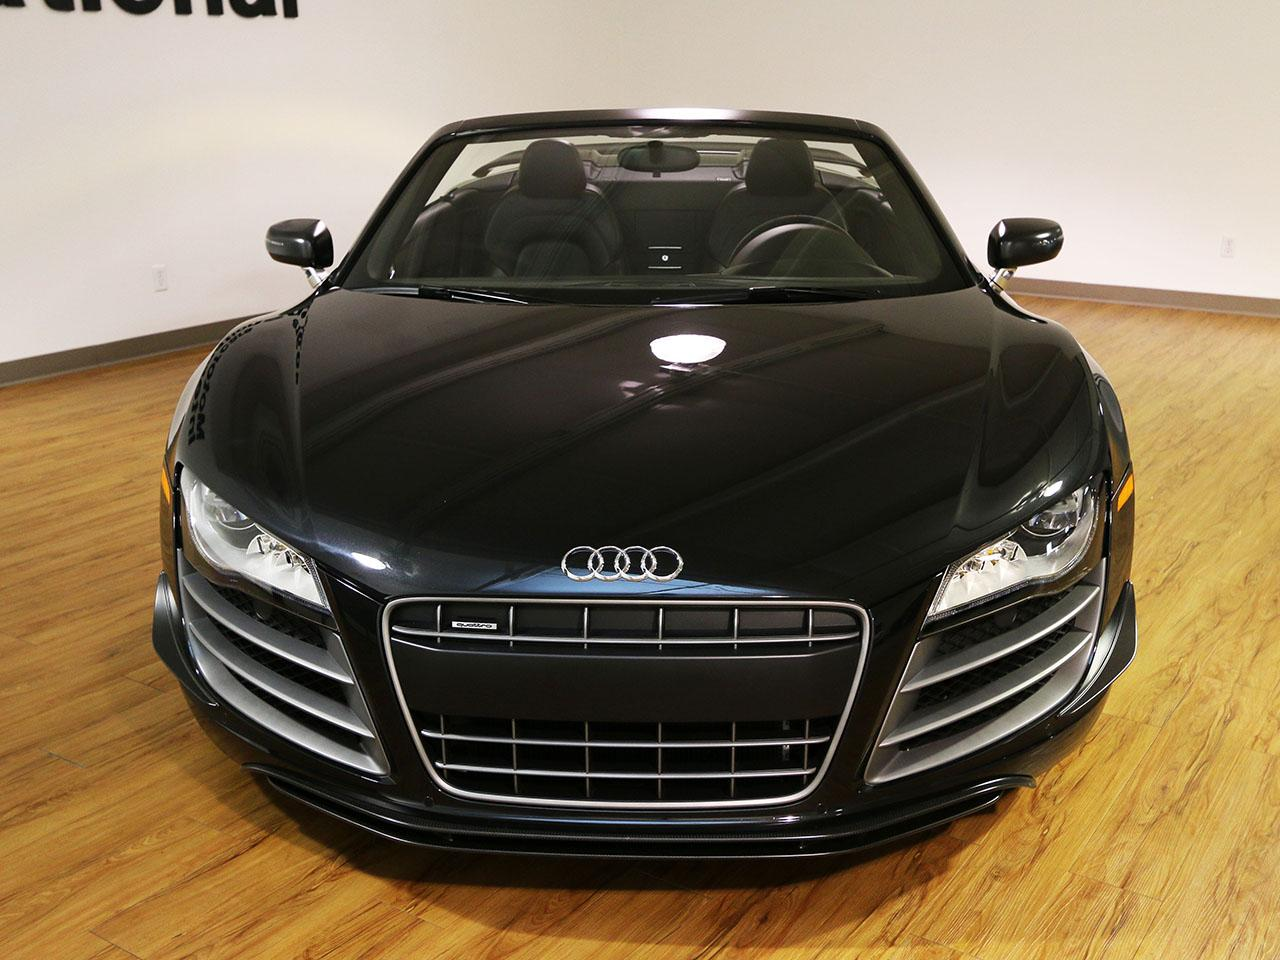 2012 audi r8 gt v10 quattro r tronic spyder. Black Bedroom Furniture Sets. Home Design Ideas